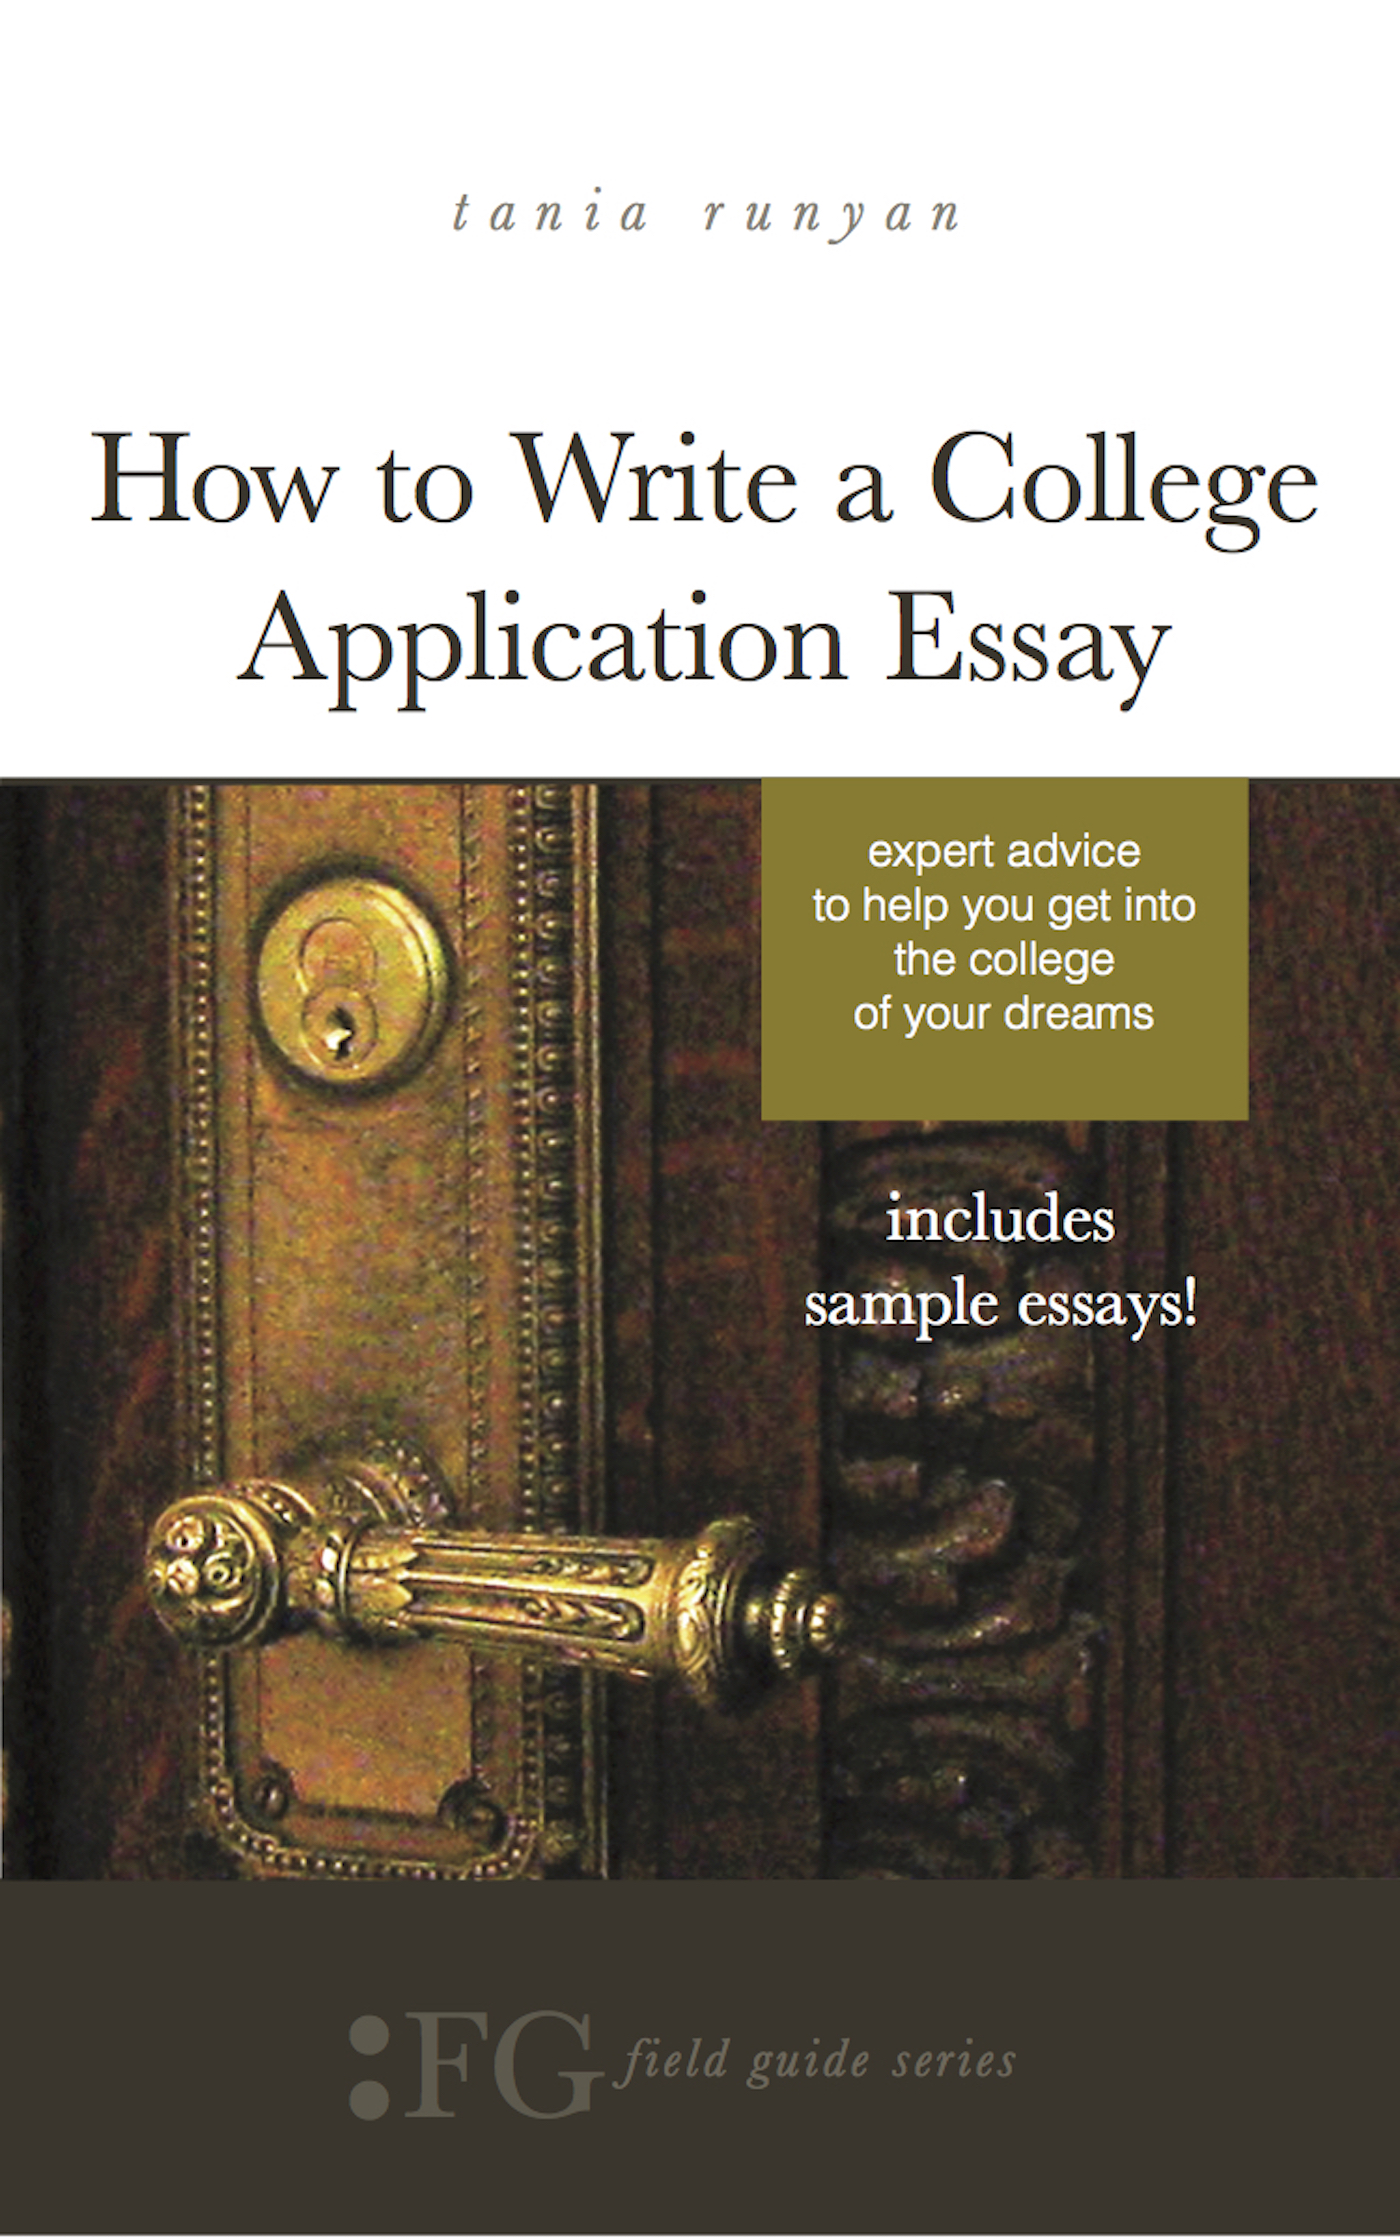 the college essay expert